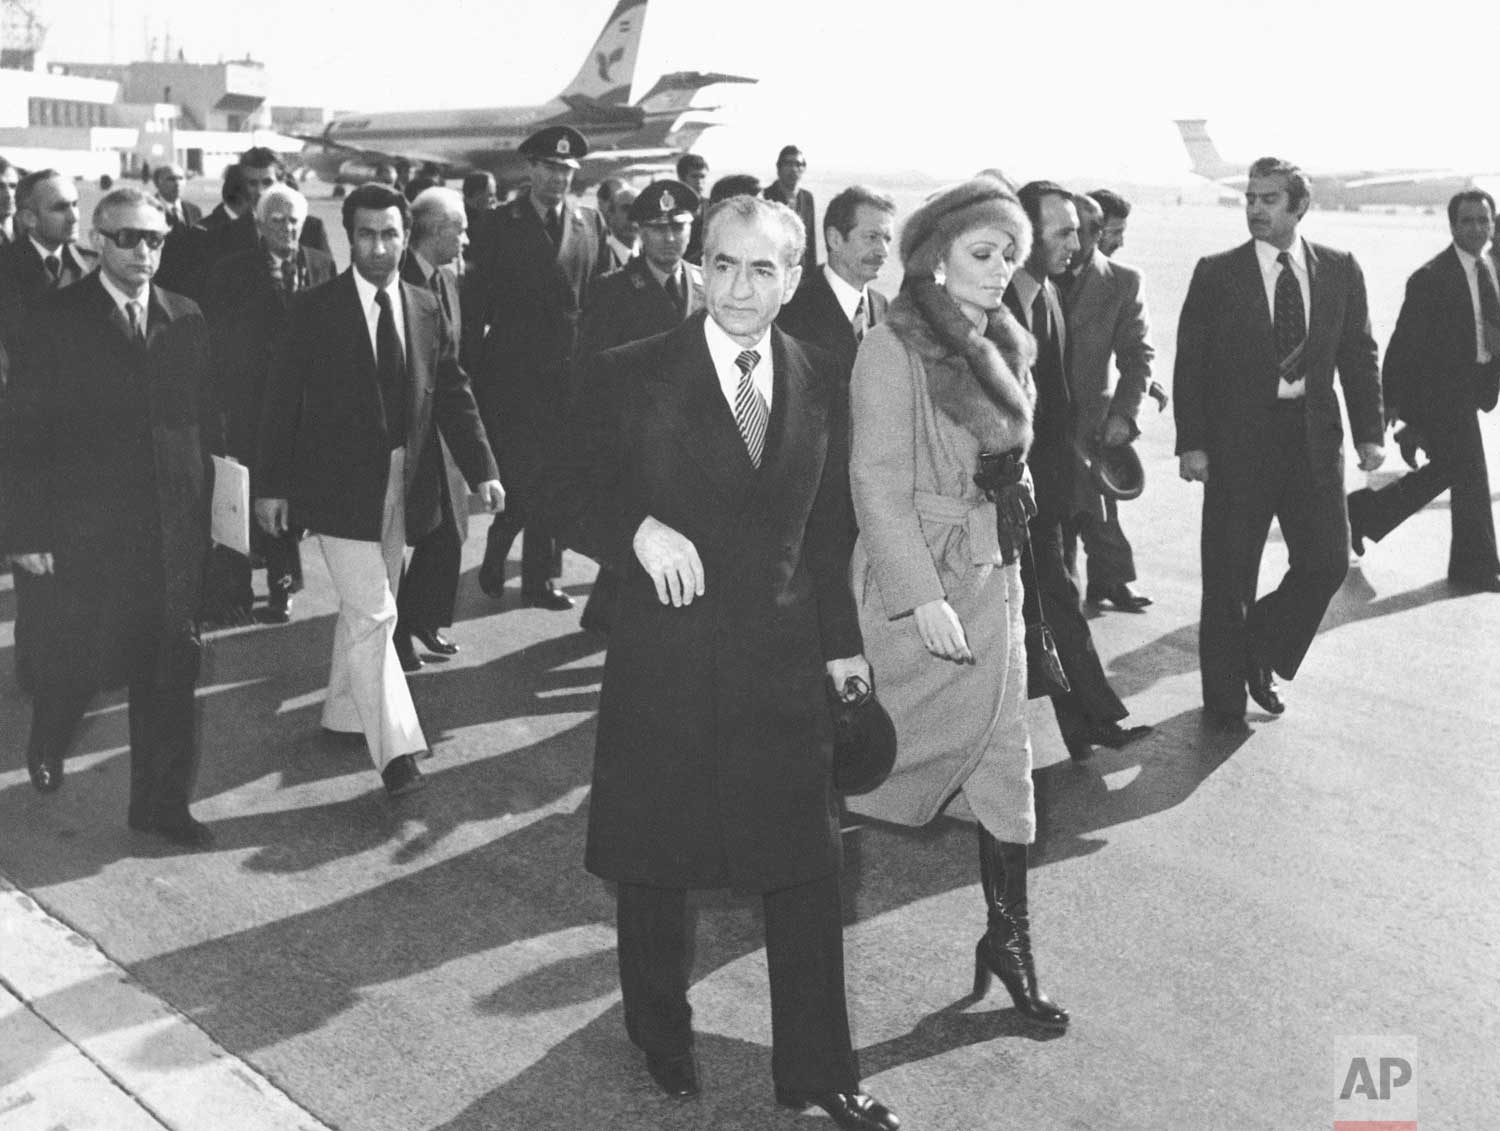 In this Jan. 16, 1979 photo, Shah Mohammad Reza Pahlavi and Empress Farah walk on the tarmac at Mehrabad Airport in Tehran, Iran, to board a plane to leave the country.  (AP Photo)